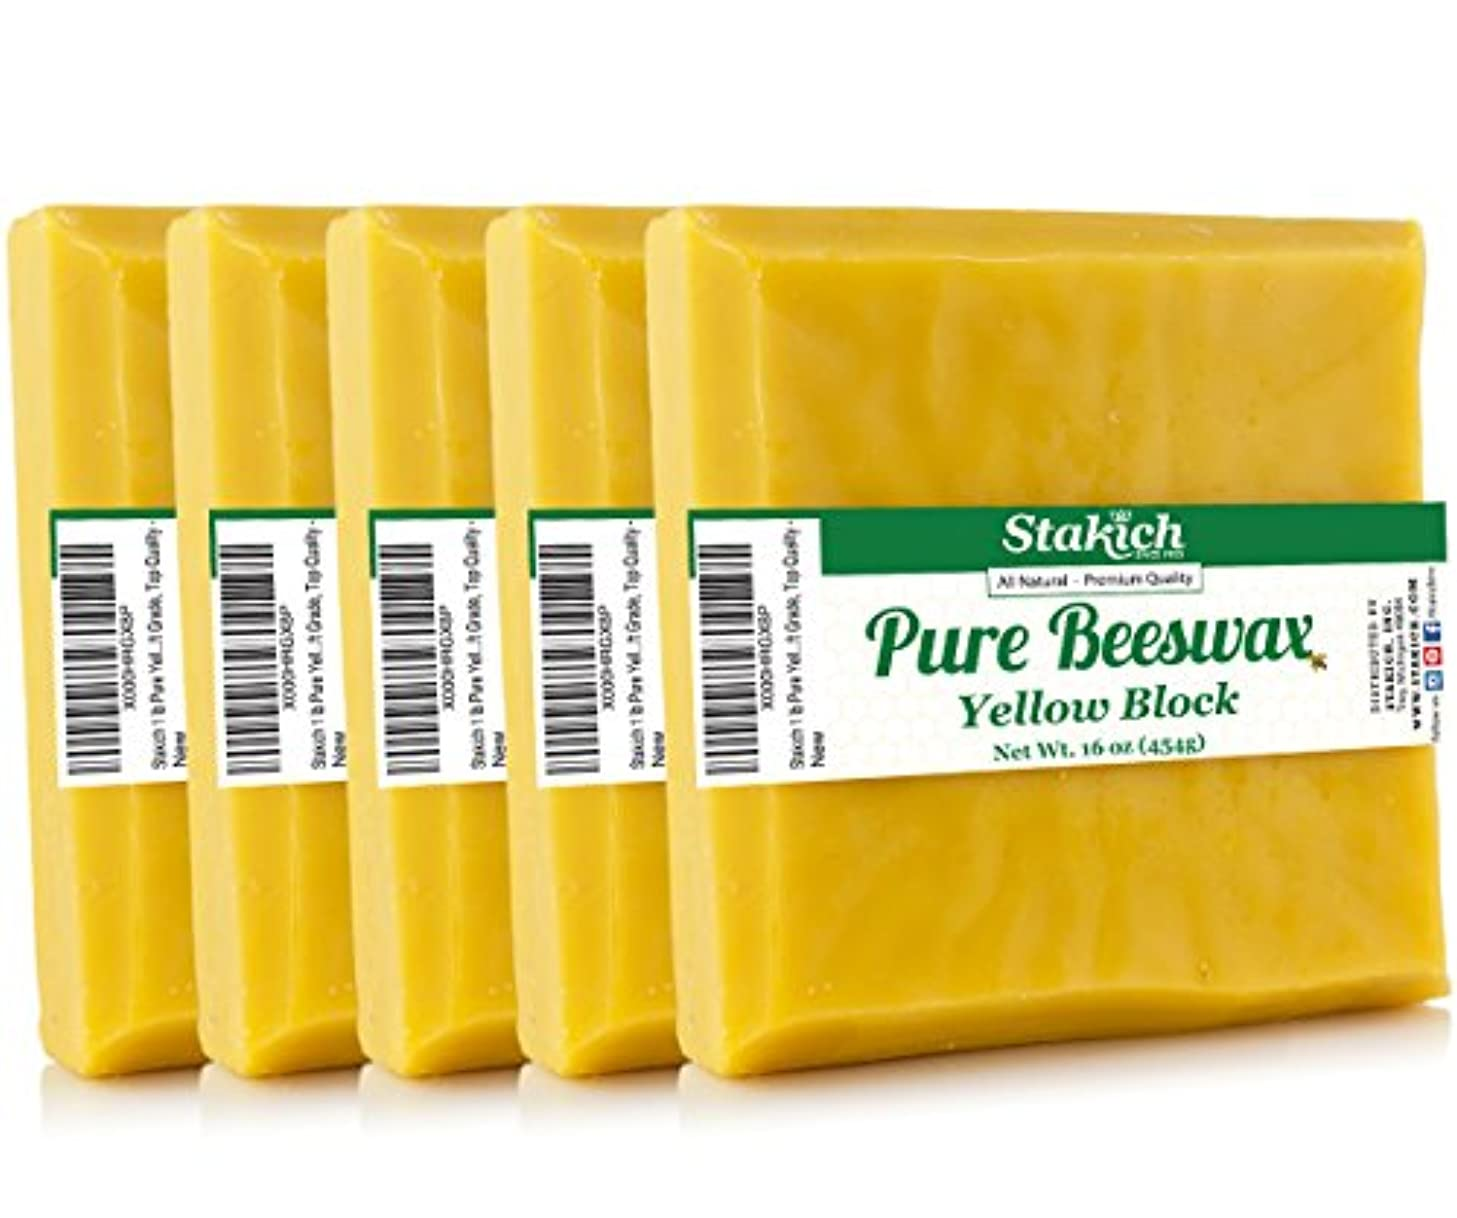 Stakich Pure Yellow Beeswax Block - 100% Natural, Craft Grade, Premium Quality - (5 lb (in 1 lb Blocks))